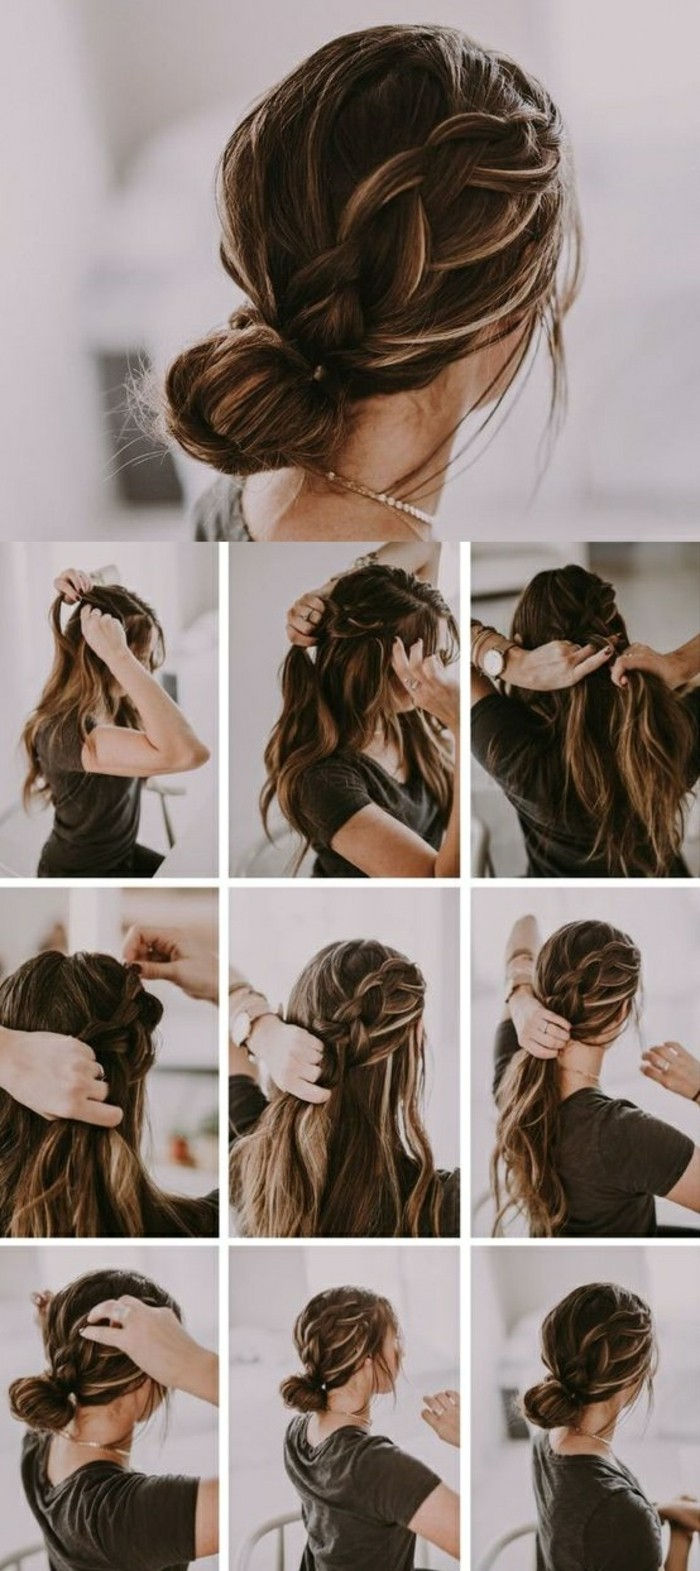 Dokonaj-fast-fryzury-dark brown-hair-warkocz-tie-updo-yourself